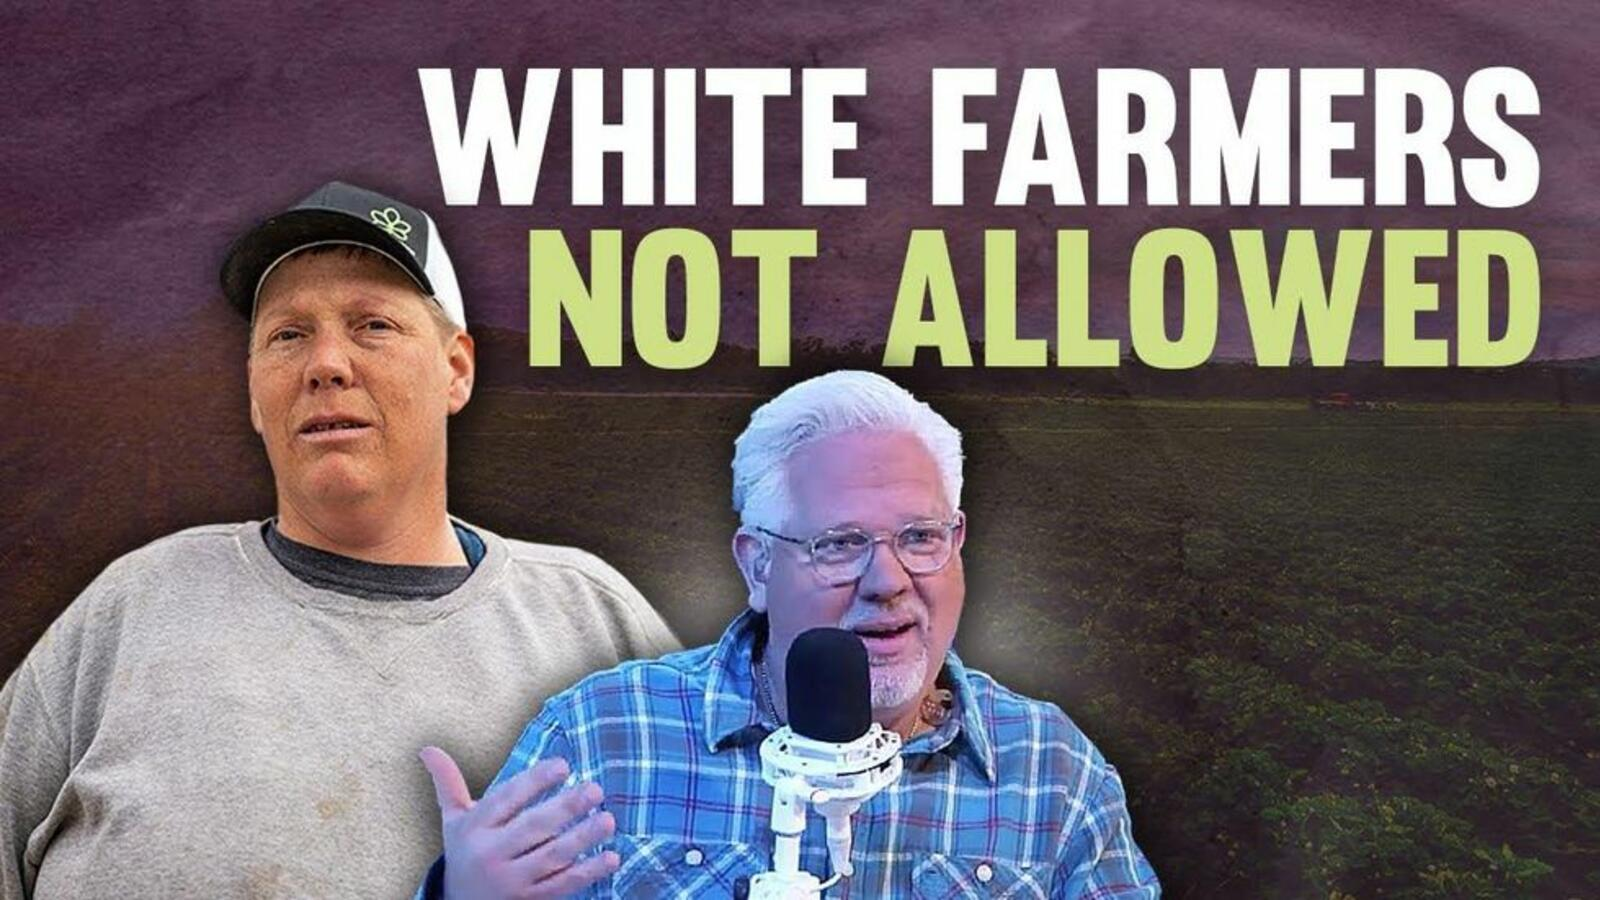 Farmer fights back against BLATANT RACISM from Biden administration